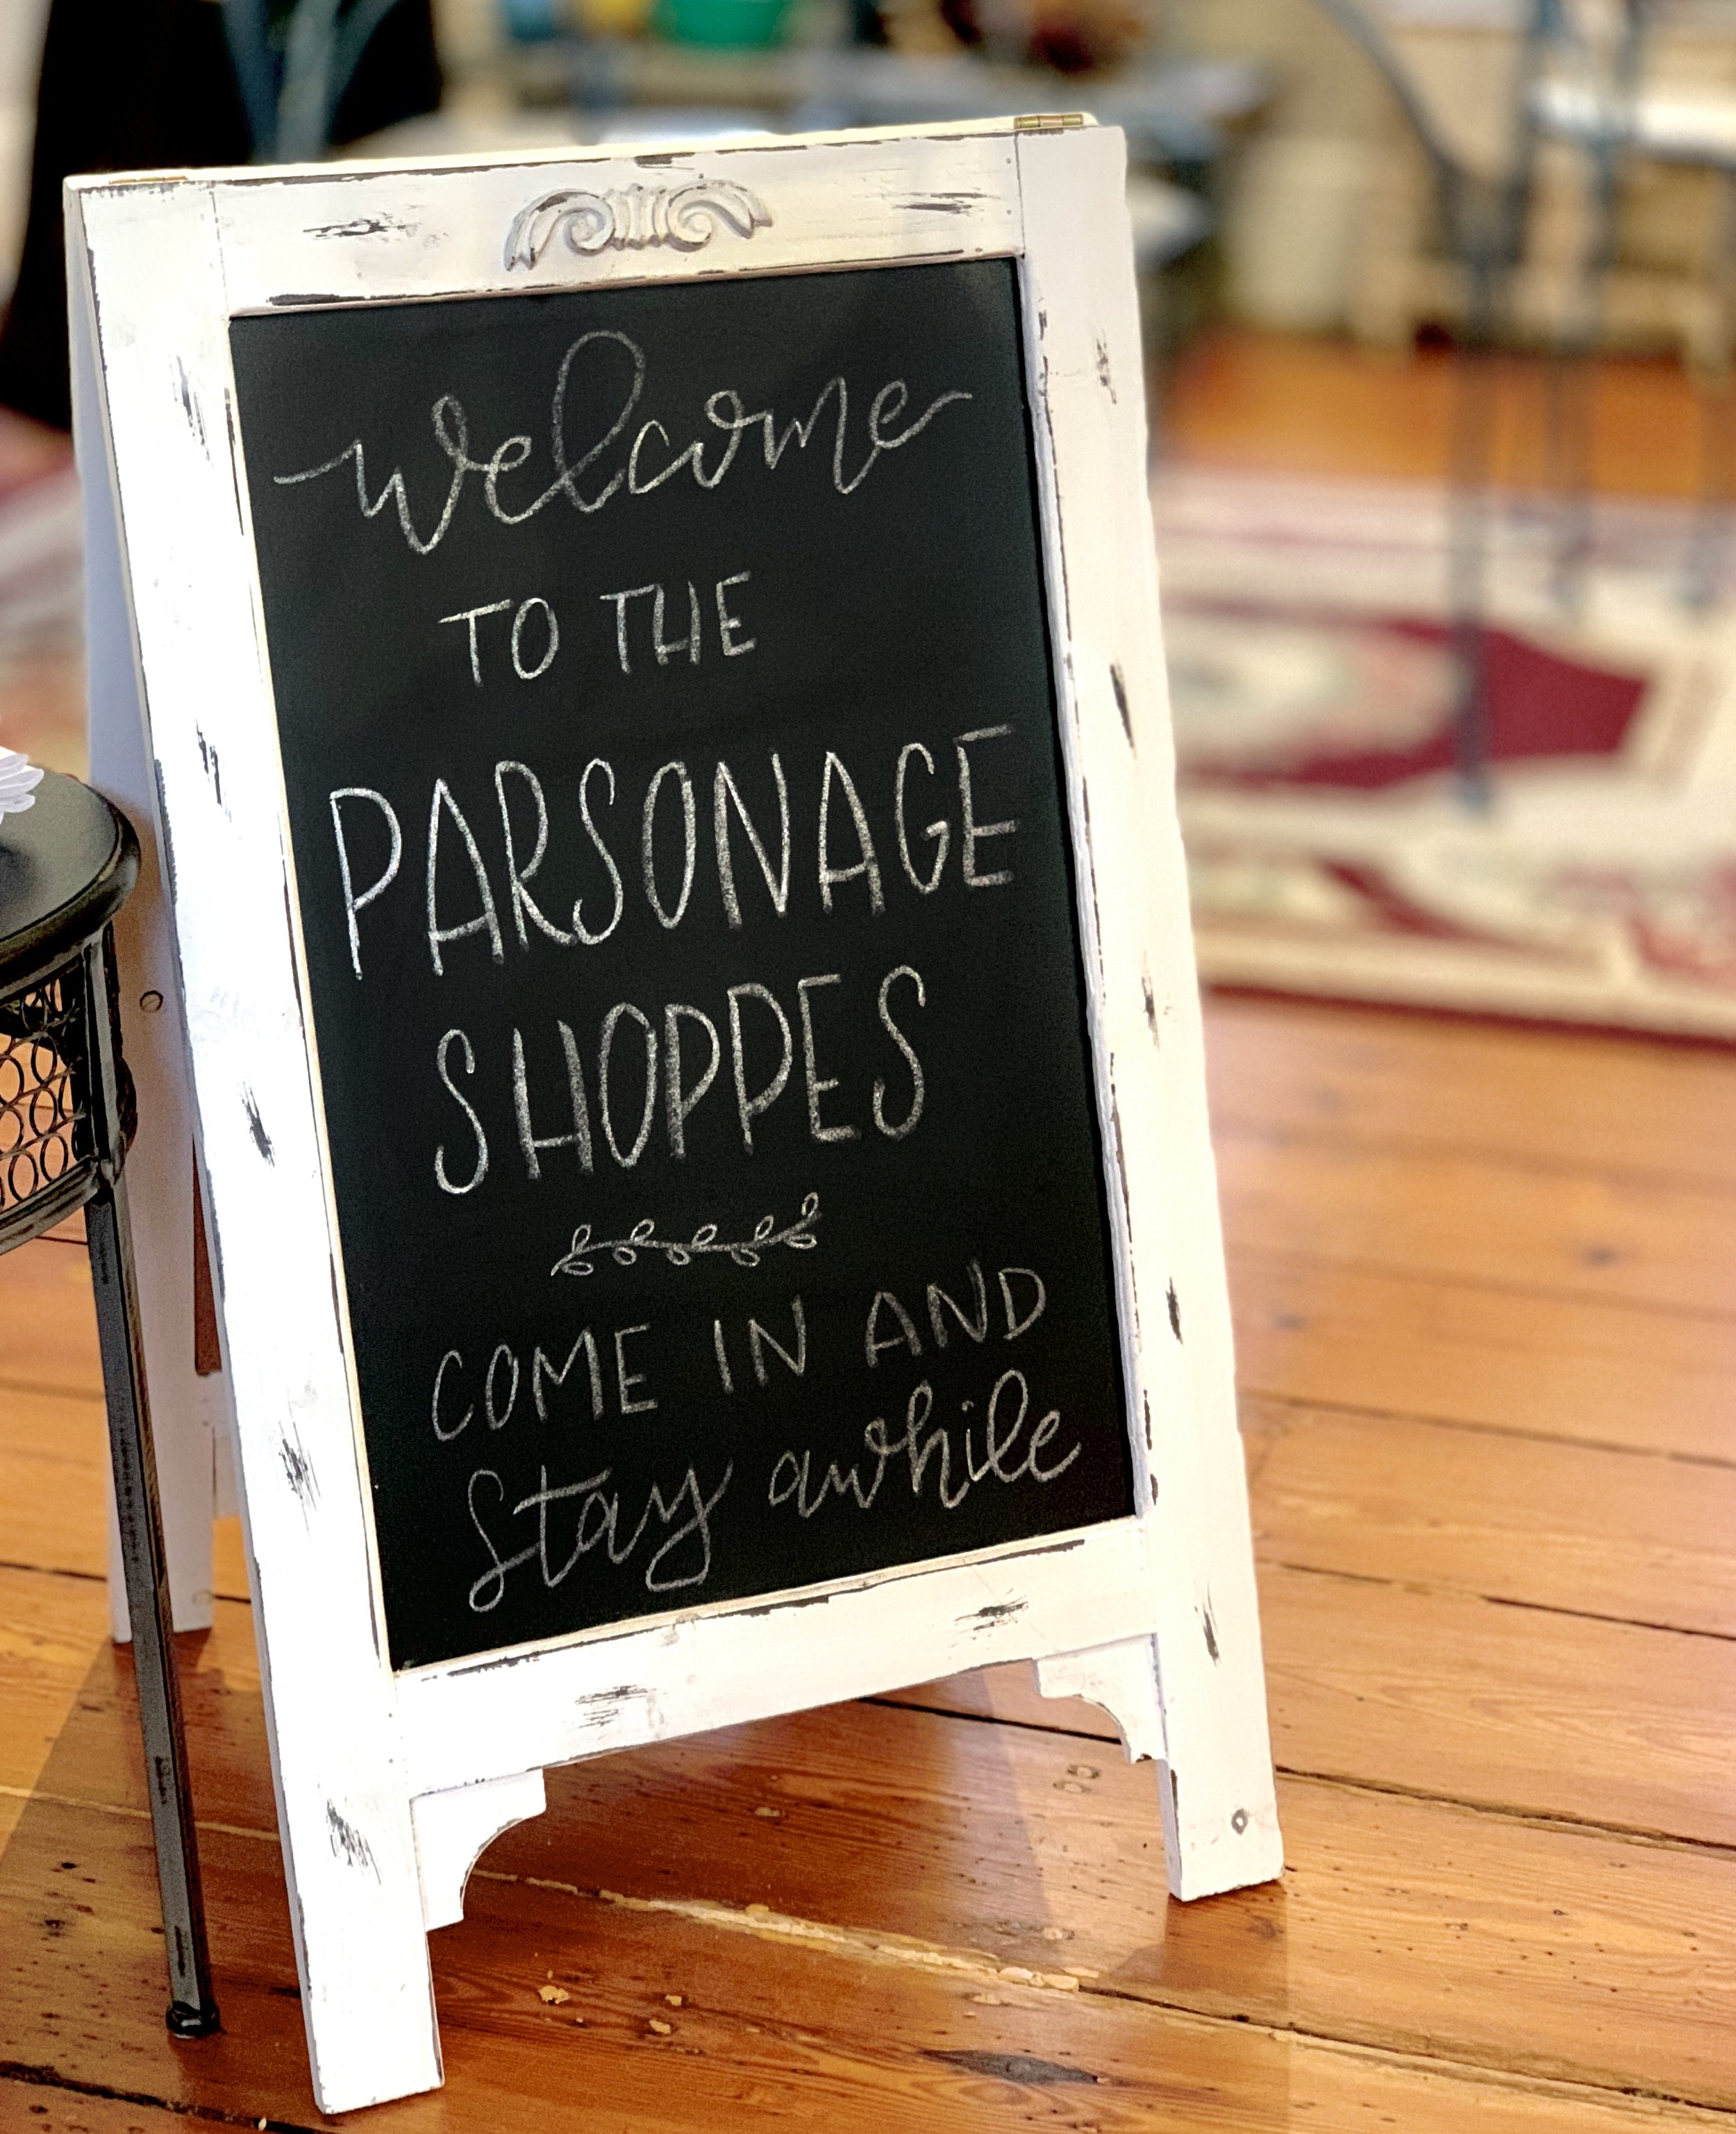 The Parsonage Shoppes - 182 N. Main Street, Manahawkin, NJ 08050Open Daily